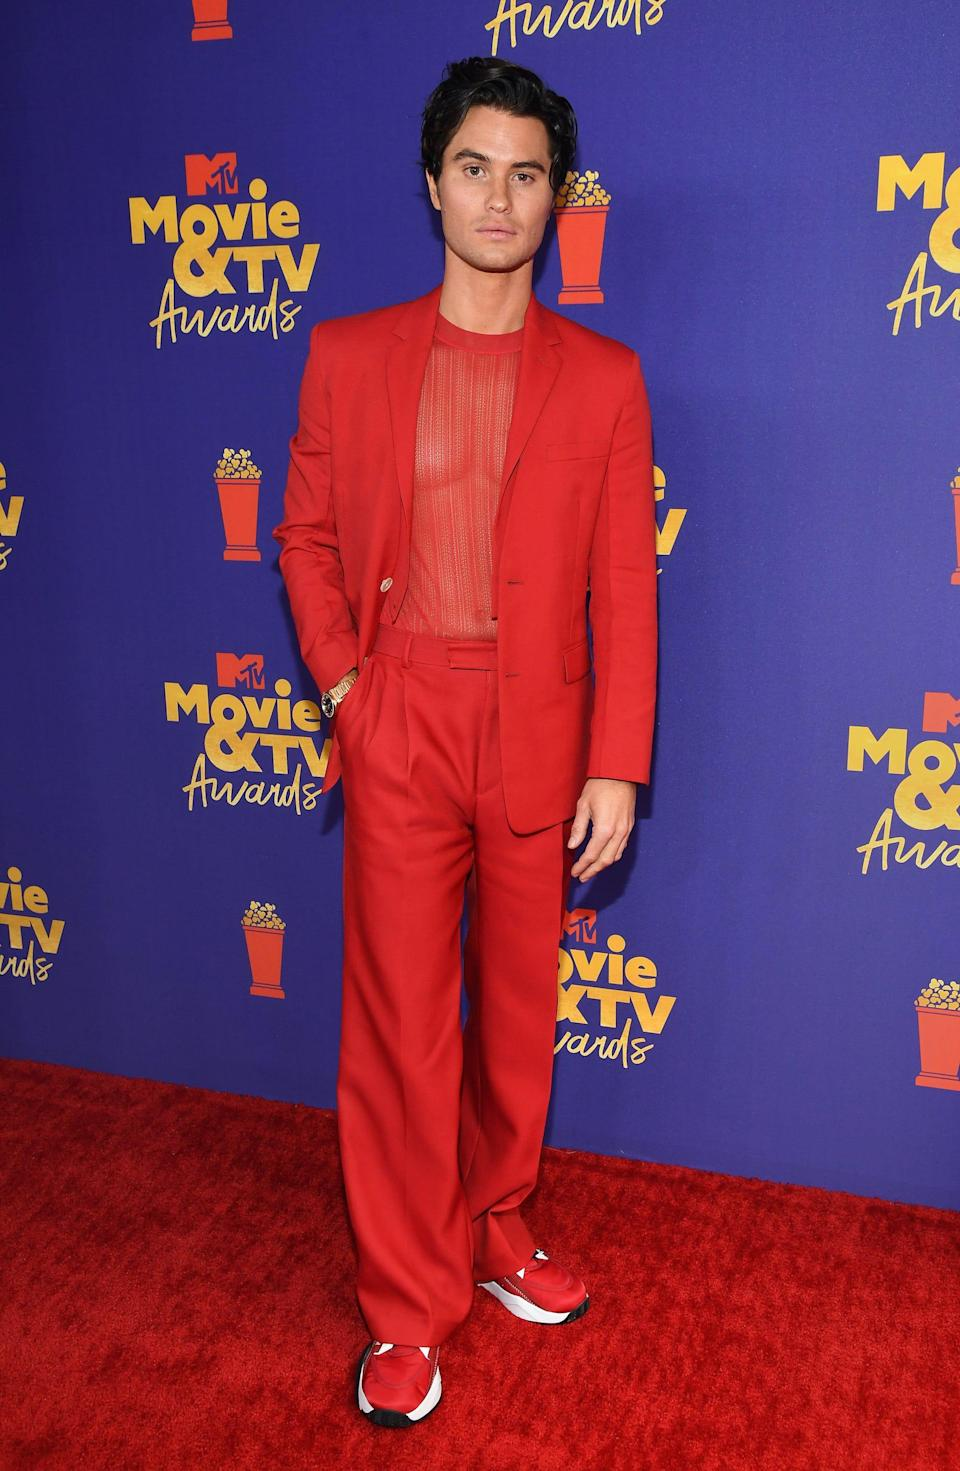 Chase Stokes attends the 2021 MTV Movie Awards on May 16